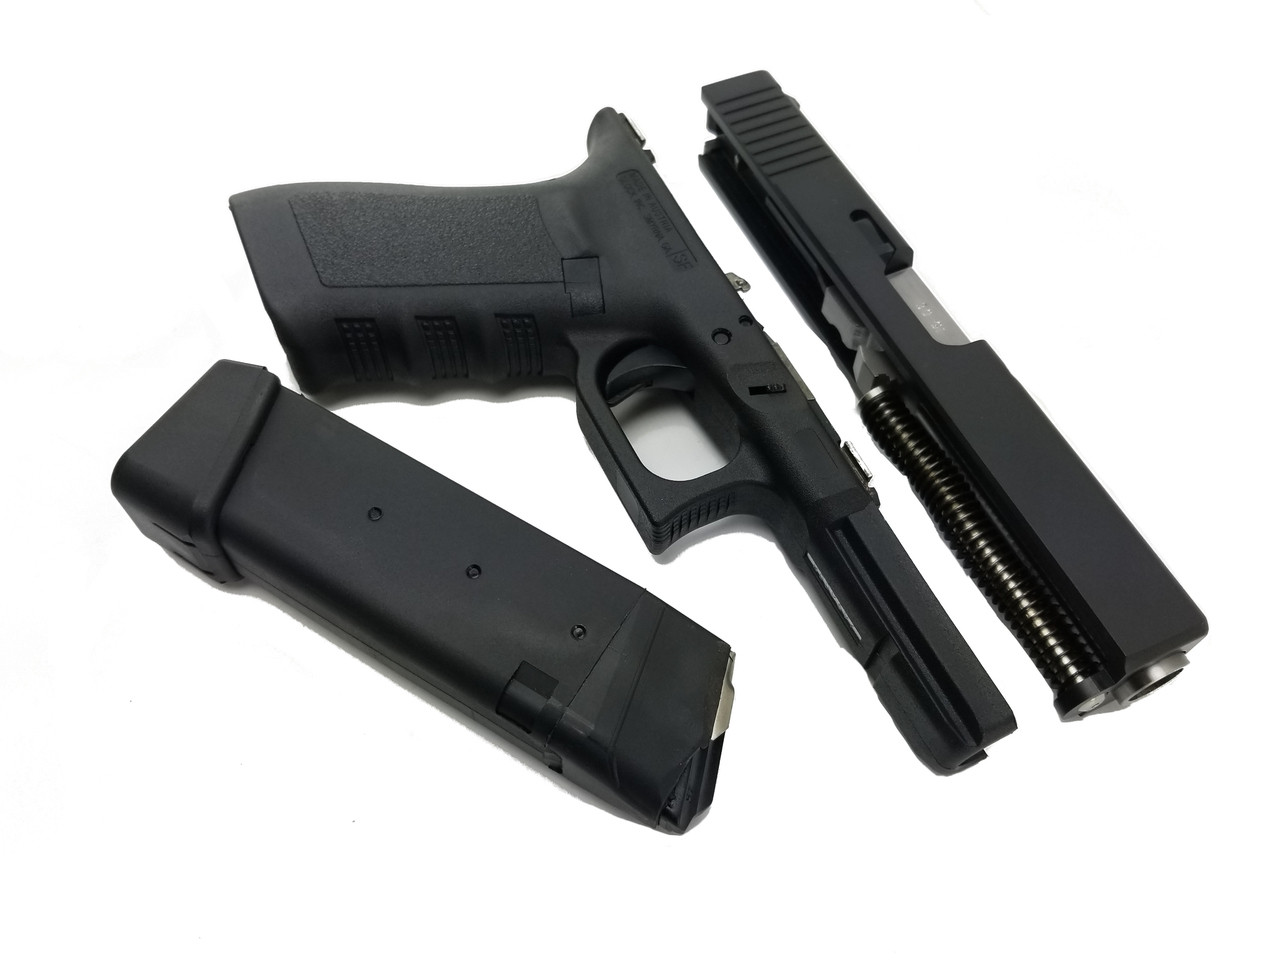 Guncrafter Industries  50GI Drop-In Conversion for Glock Pistols